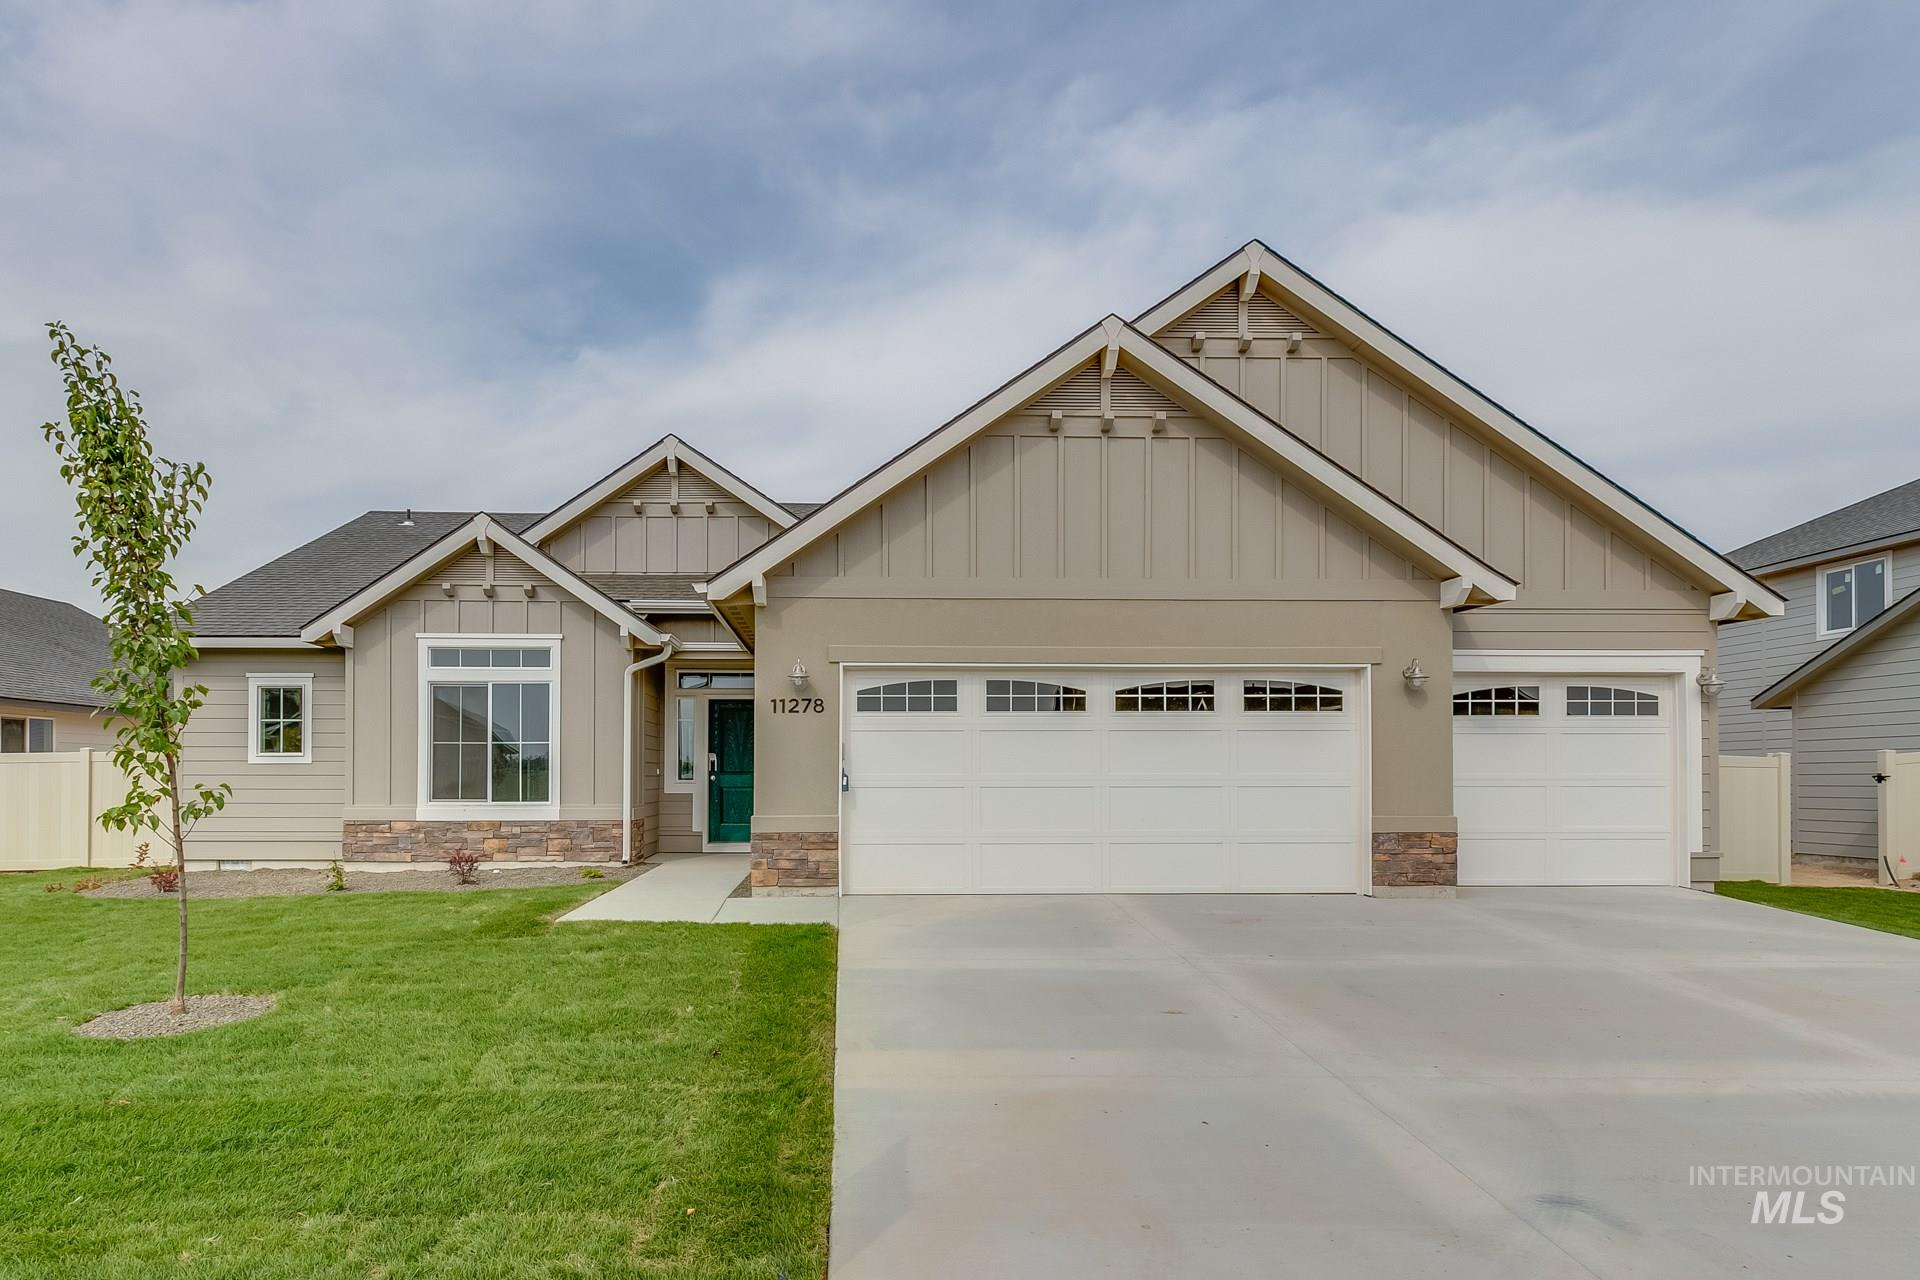 7926 E Rogue Dr Property Photo - Nampa, ID real estate listing